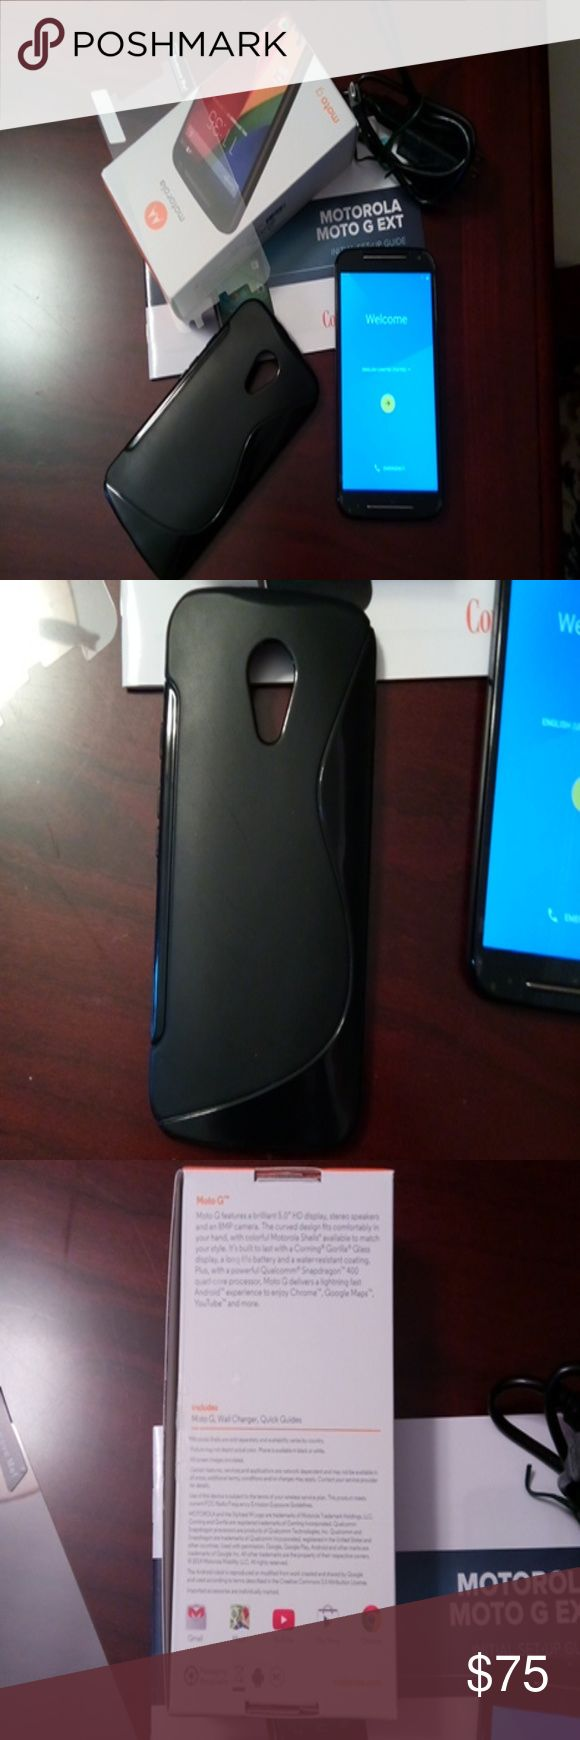 Motorola Moto G EXT 2nd Generation 8G This phone was used with Consumer Cellular, I did call and get the unlock code from them, and it has been UNLOCKED.  It has been reset to factory settings.  It is in great shape, I will include a case, a new screen saver, and of course cord and booklet.  Any questions please feel free to ask. Motorola Accessories Phone Cases